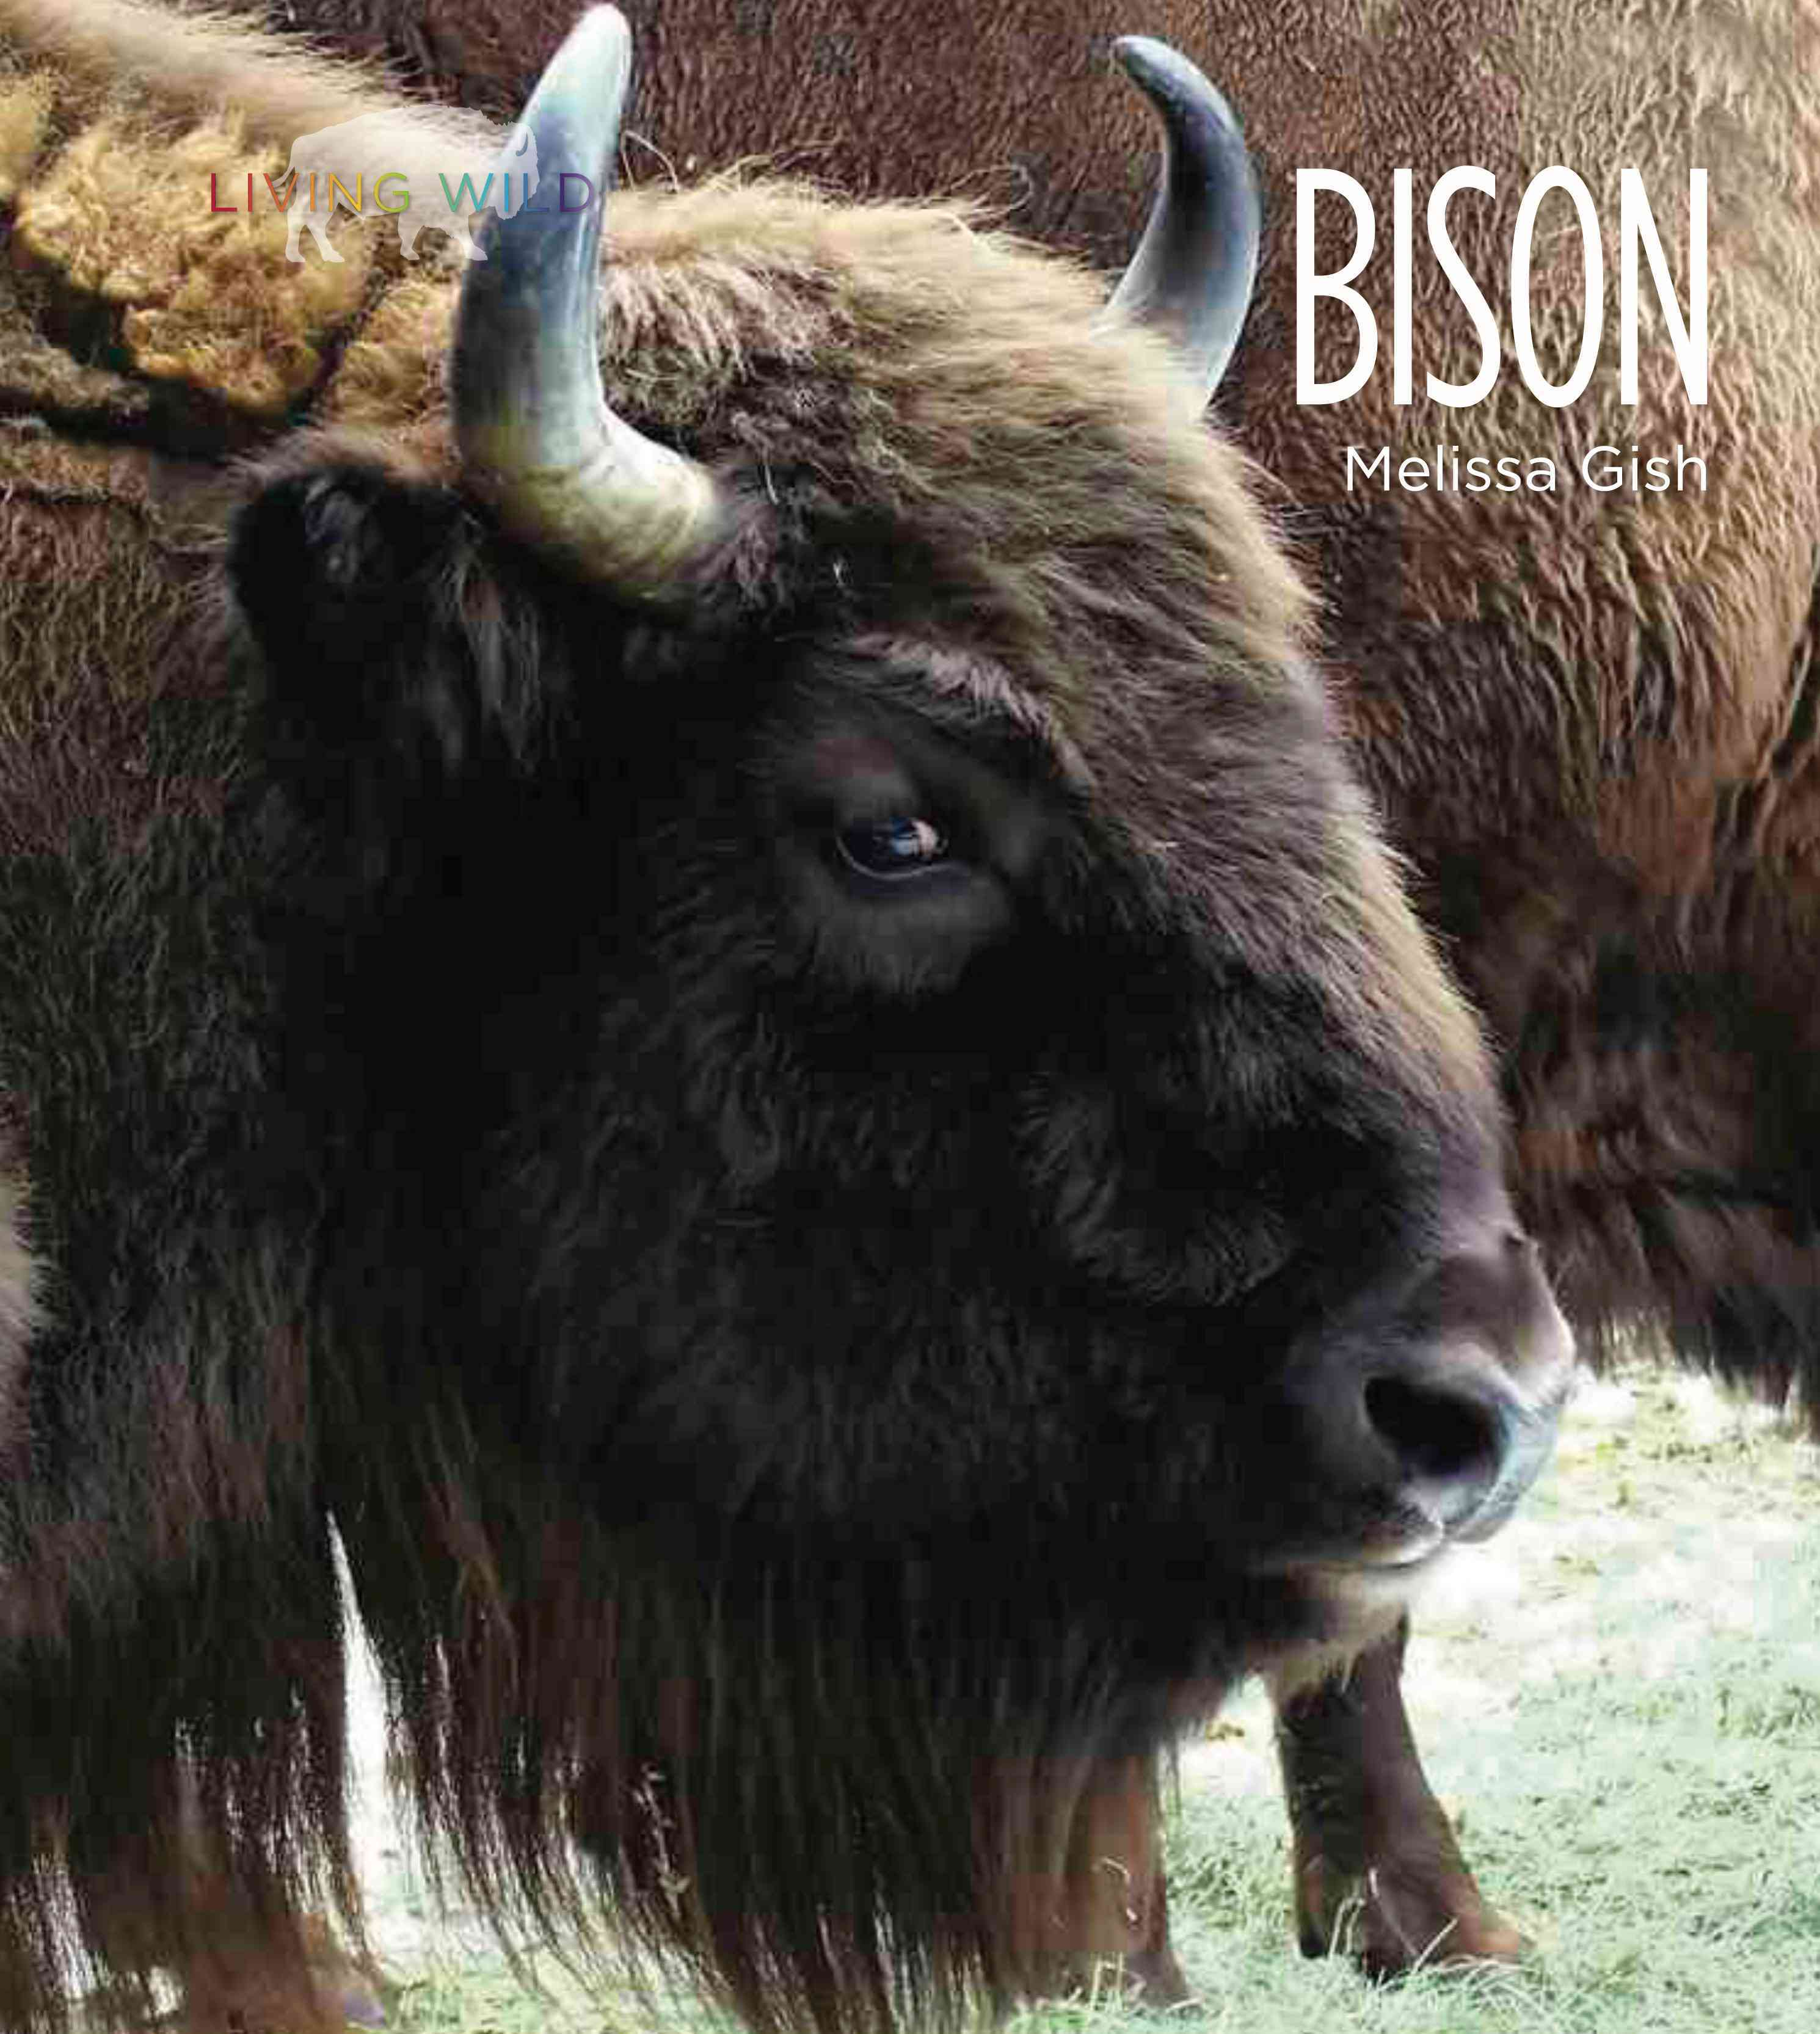 Bison By Gish, Melissa